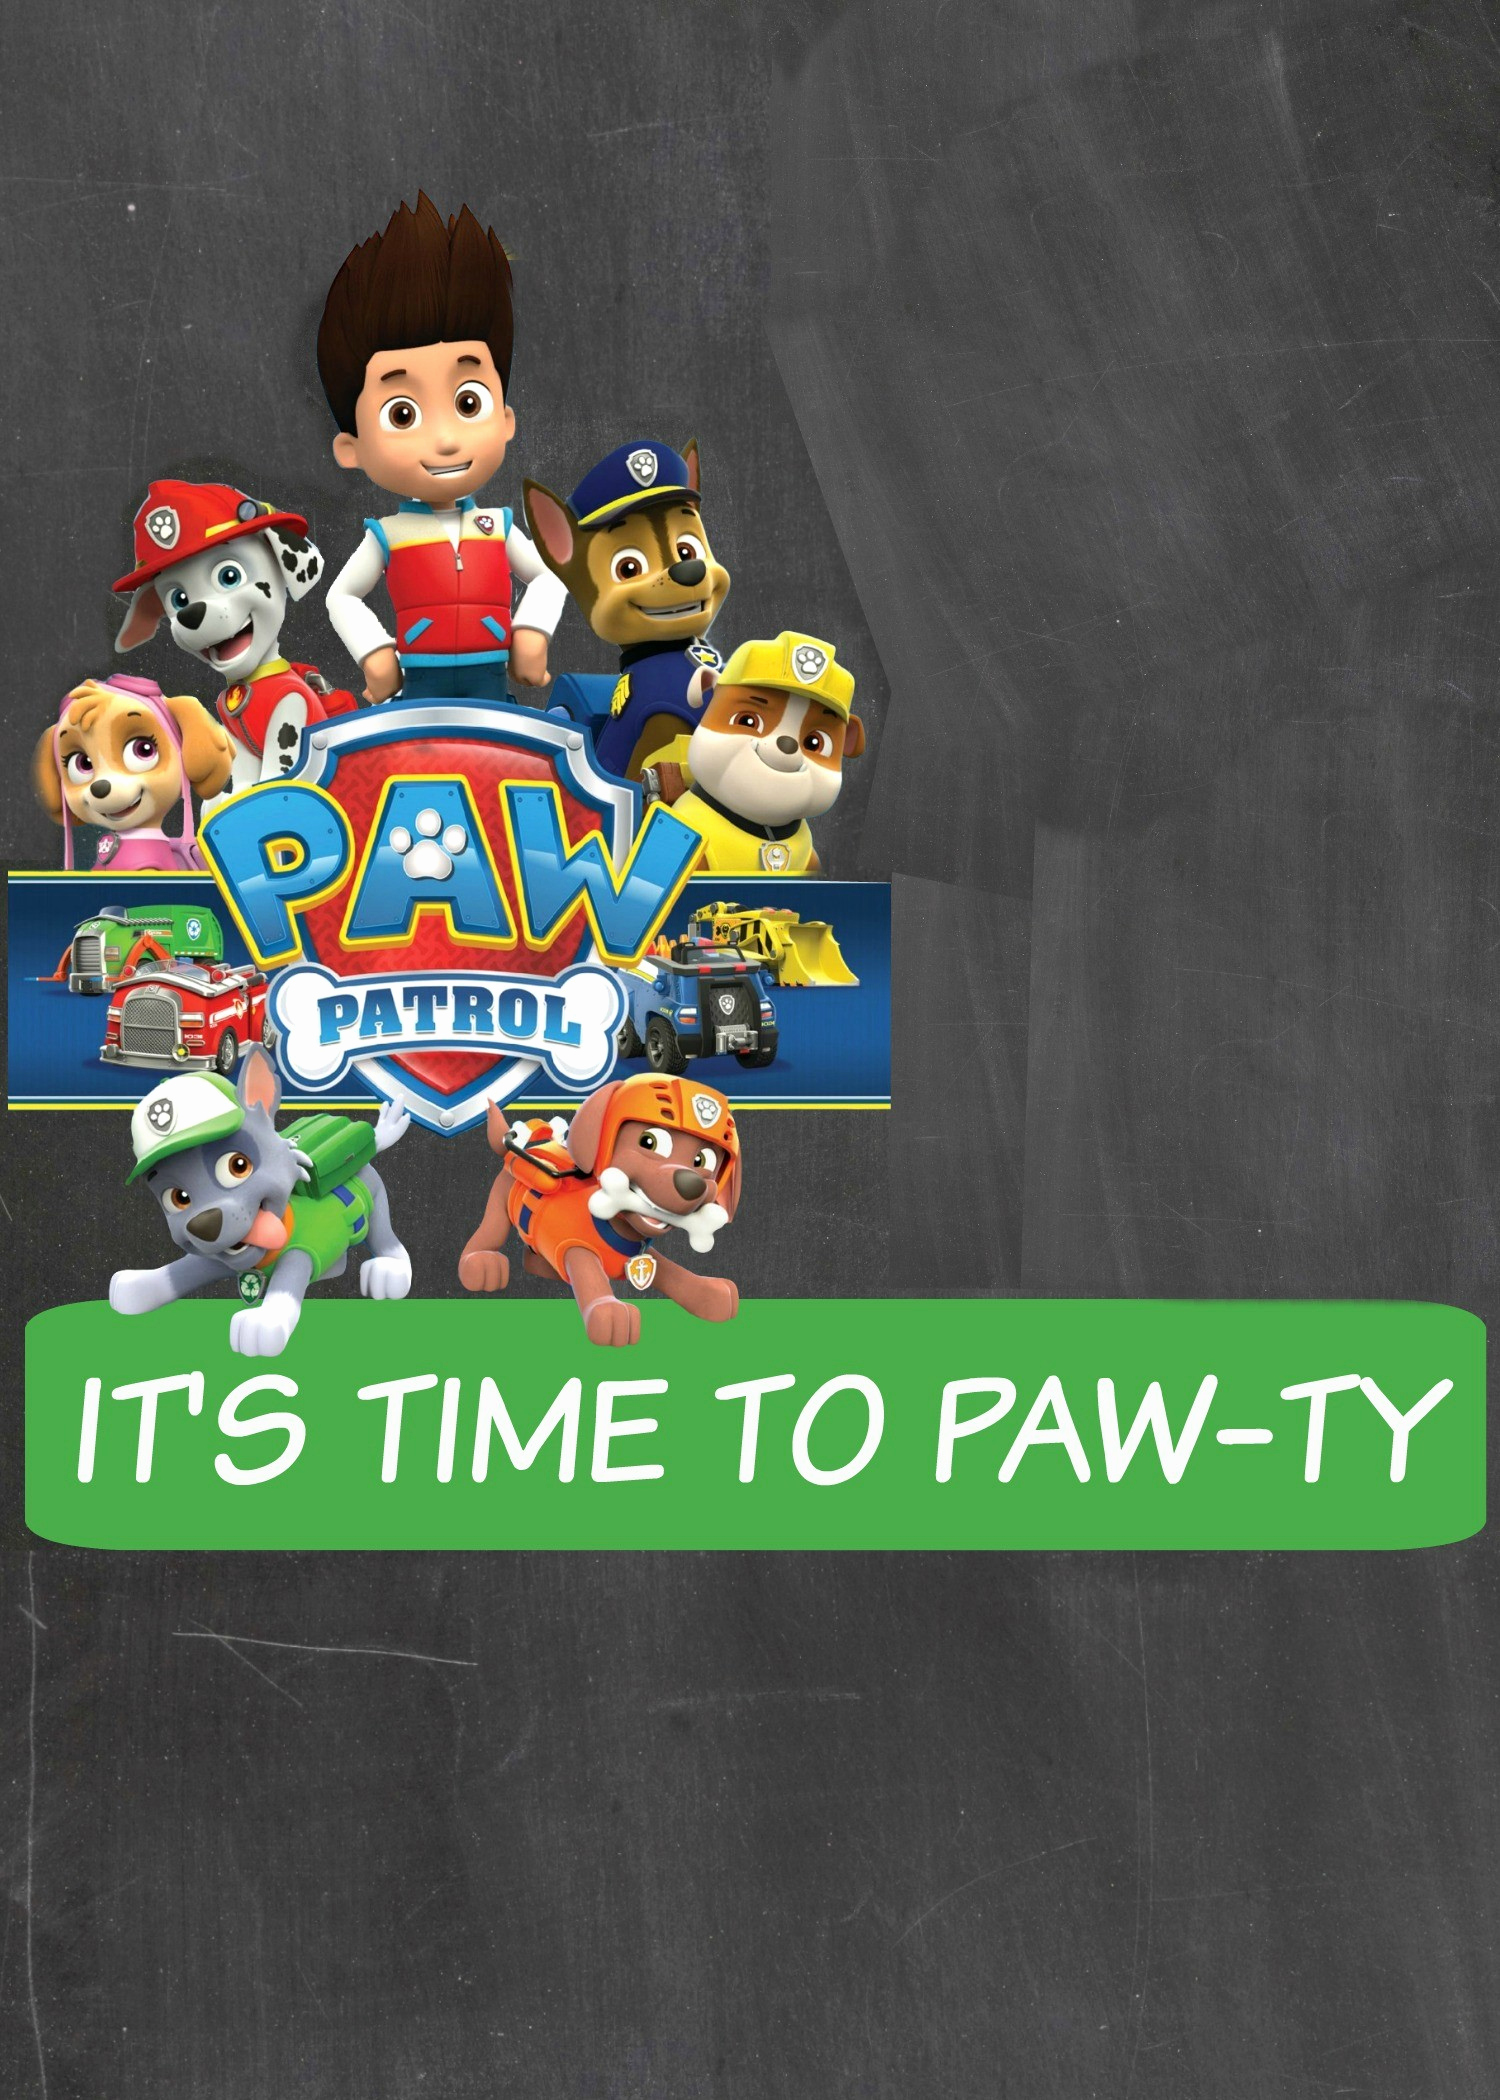 Paw Patrol Invitation Templates Best Of Paw Patrol Background ·① Download Free Wallpapers for